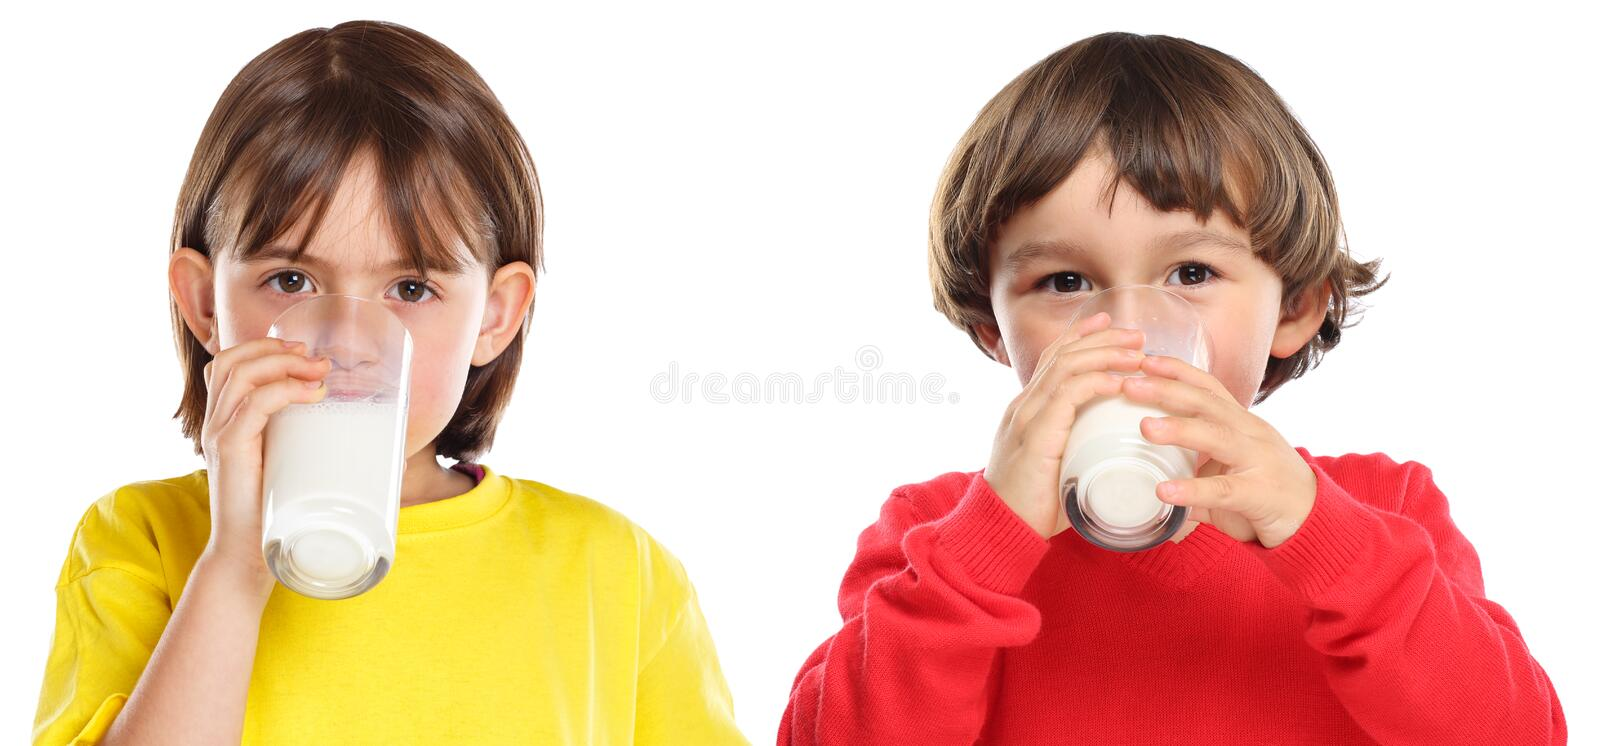 Children kids girl boy drinking milk healthy eating isolated on white royalty free stock image